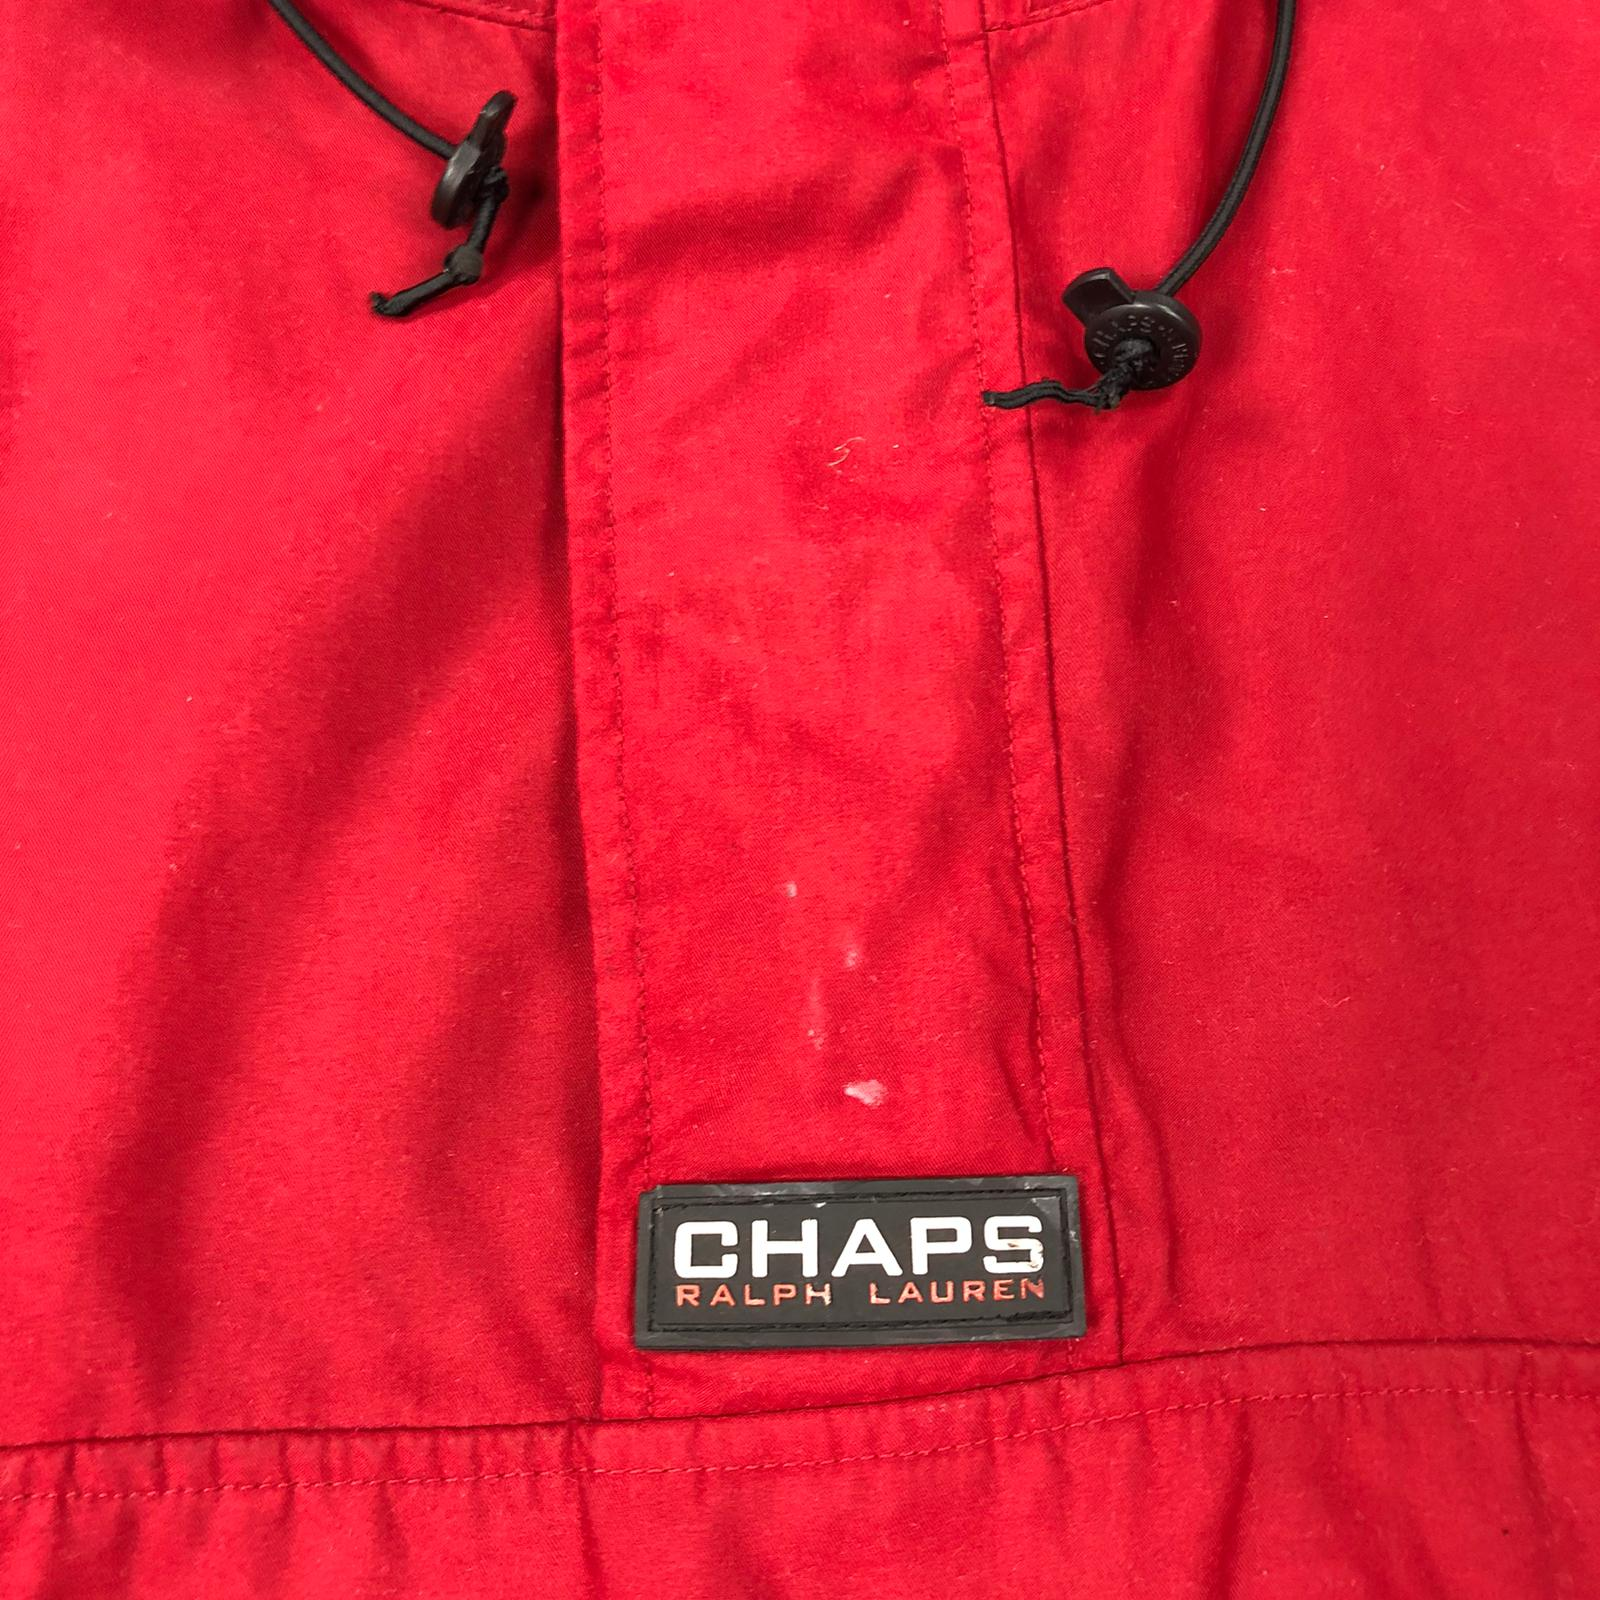 Chaps pullover jacket